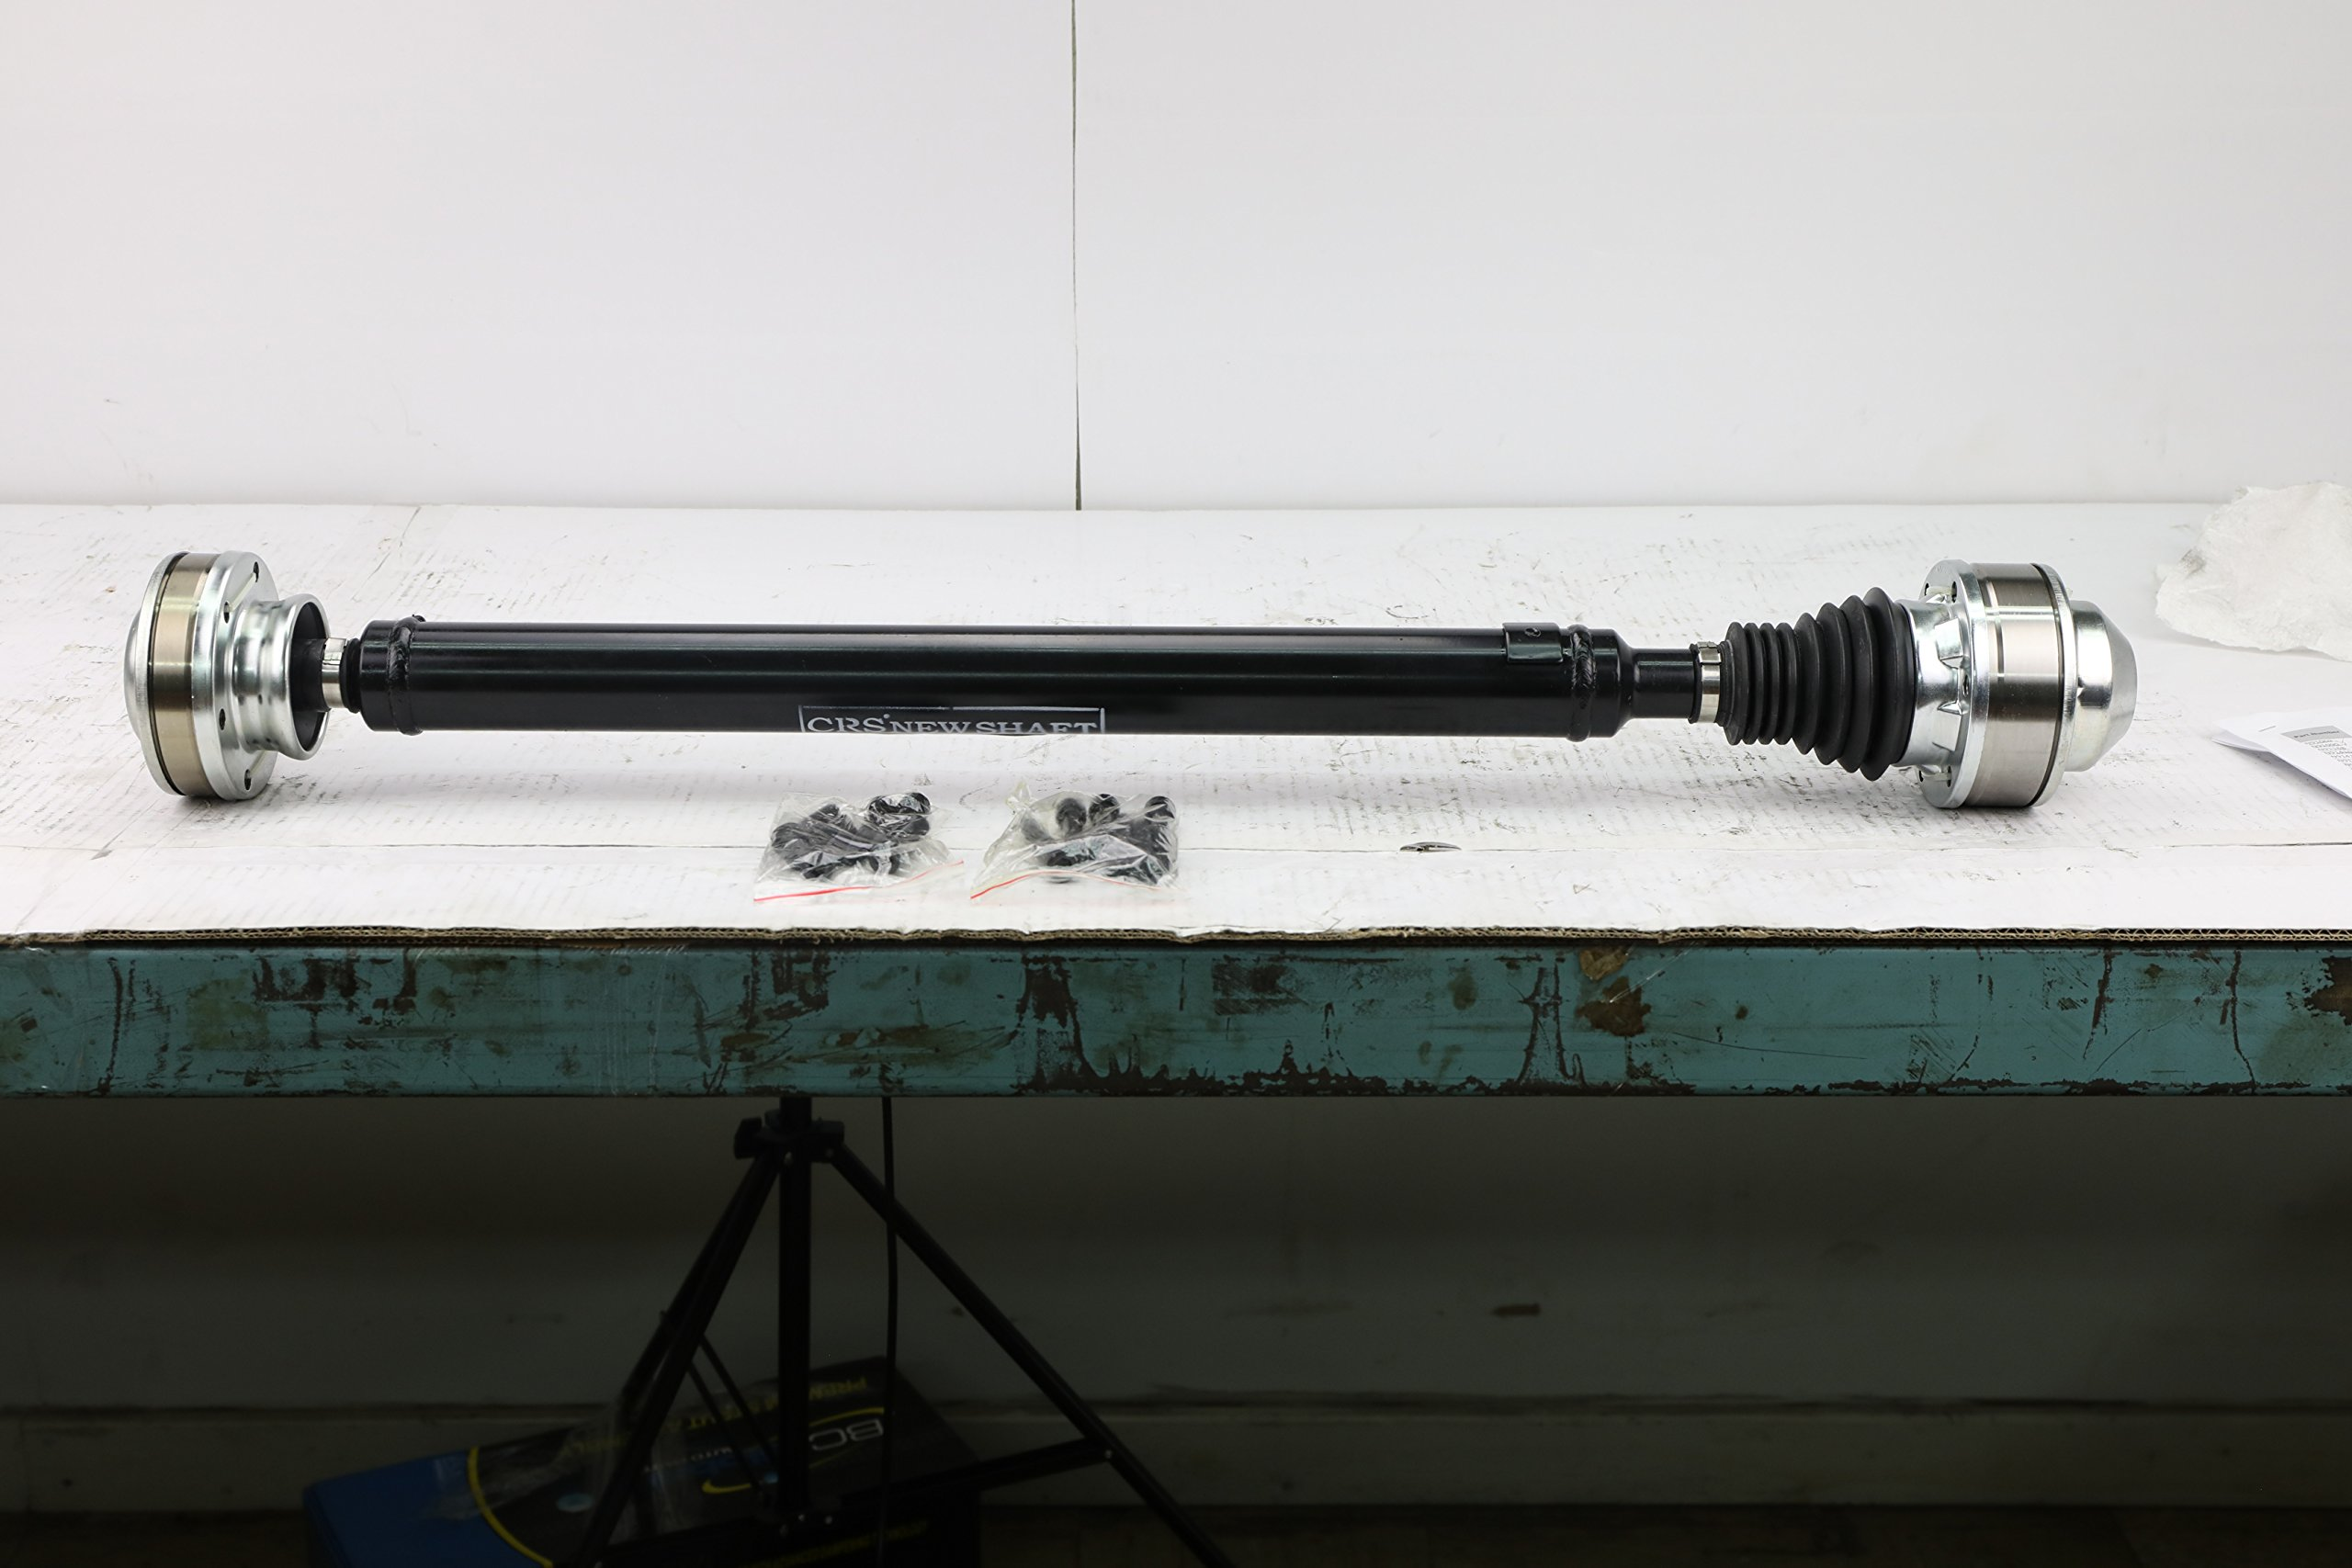 "CRS N99072 Prop shaft/ Drive Shaft Assembly, Front, for 2005- 06 Jeep Grand Cherokee V8 4.7L Eng, 2005- 10 Jeep Grand Cherokee V8 5.7L Eng.(V6 3.7L), 4WD/ AWD, w/ NV245 Transfer Case, about 34"" long"